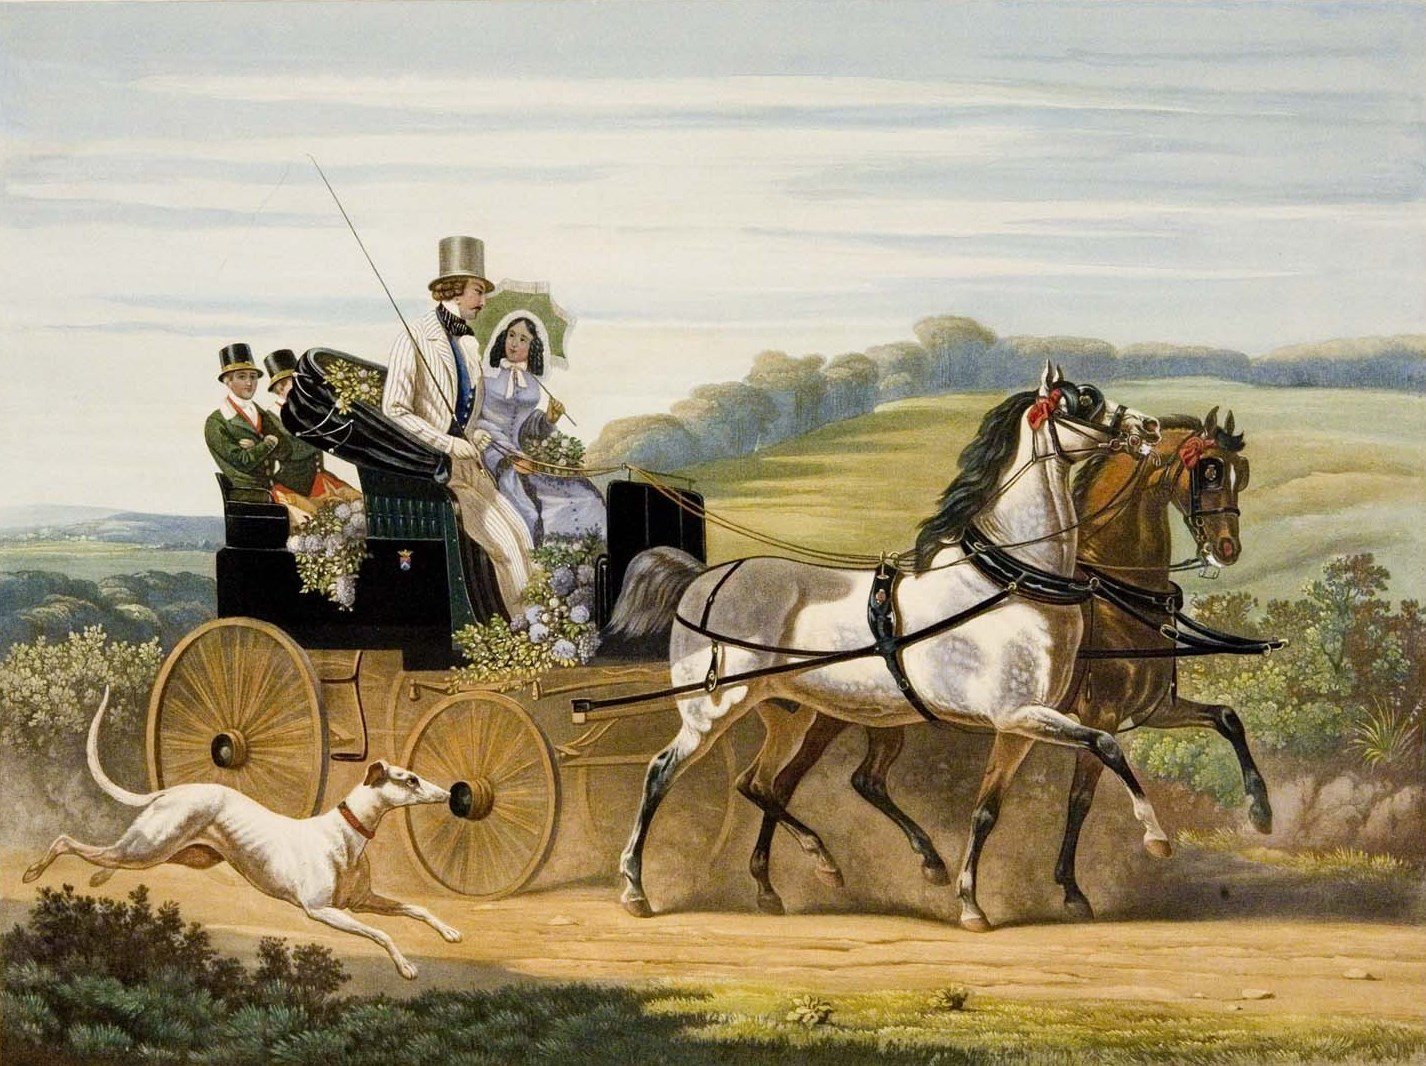 19c american women 1852 riding in a carriage. Black Bedroom Furniture Sets. Home Design Ideas